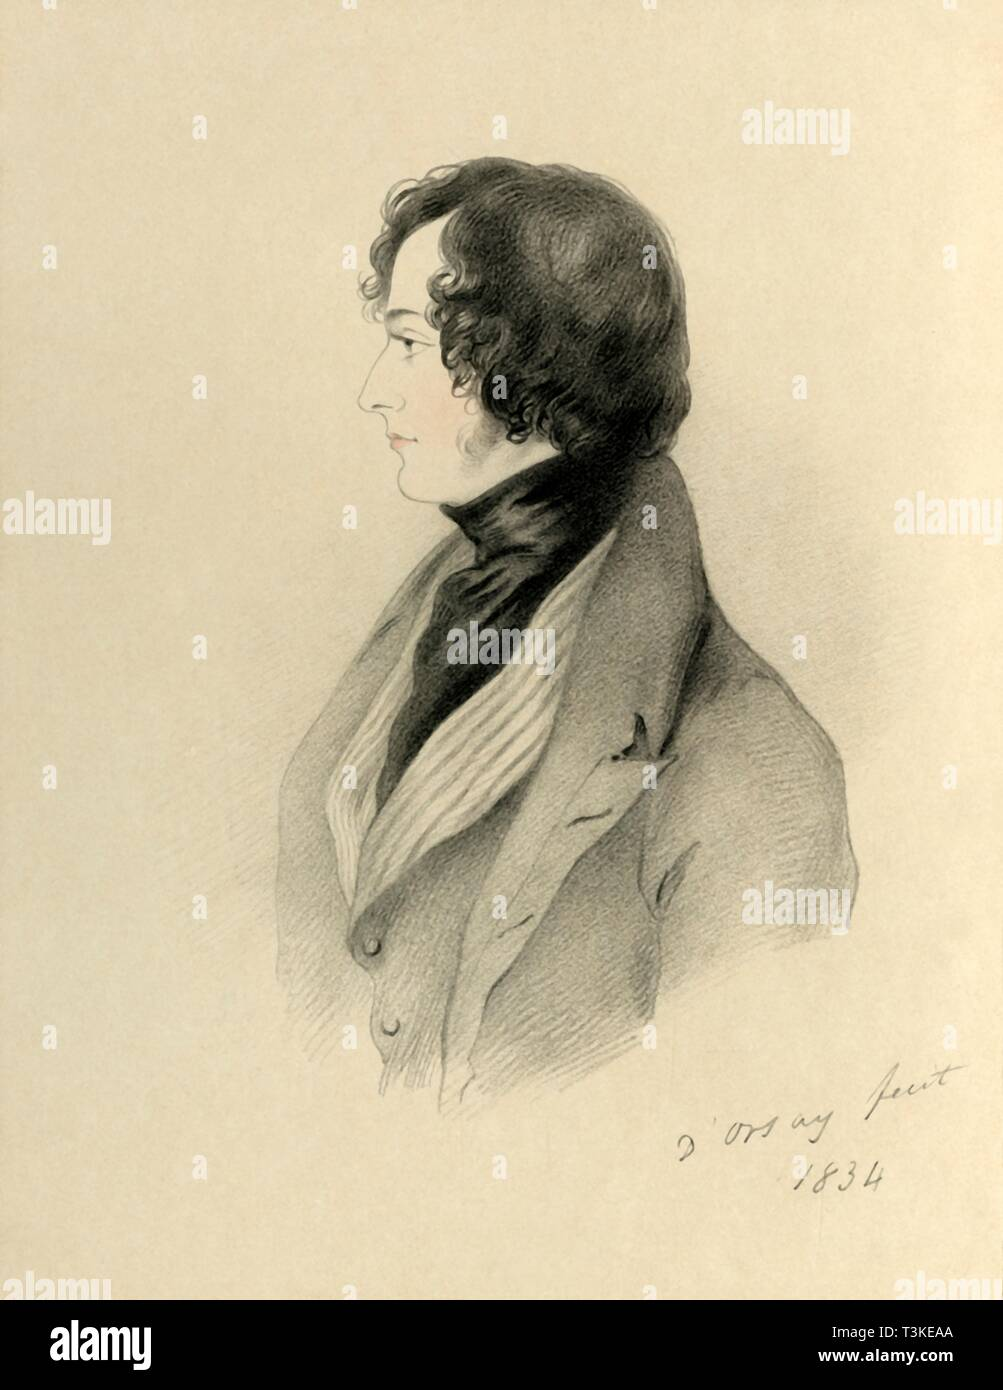 """'Right Honourable Benjamin Disraeli MP', 1834. Portrait of British Conservative statesman and writer Benjamin Disraeli (1804-1881), later the Earl of Beaconsfield. First elected to Parliament in 1837, Disraeli was twice Prime Minister of Britain, first in 1868 and then again between 1874 and 1880. Under his Conservative government, the British Empire expanded and in 1876 he conferred on Queen Victoria the title Empress of India. From """"Portraits by Count D'Orsay"""", an album assembled by Lady Georgiana Codrington. [1850s] Stock Photo"""